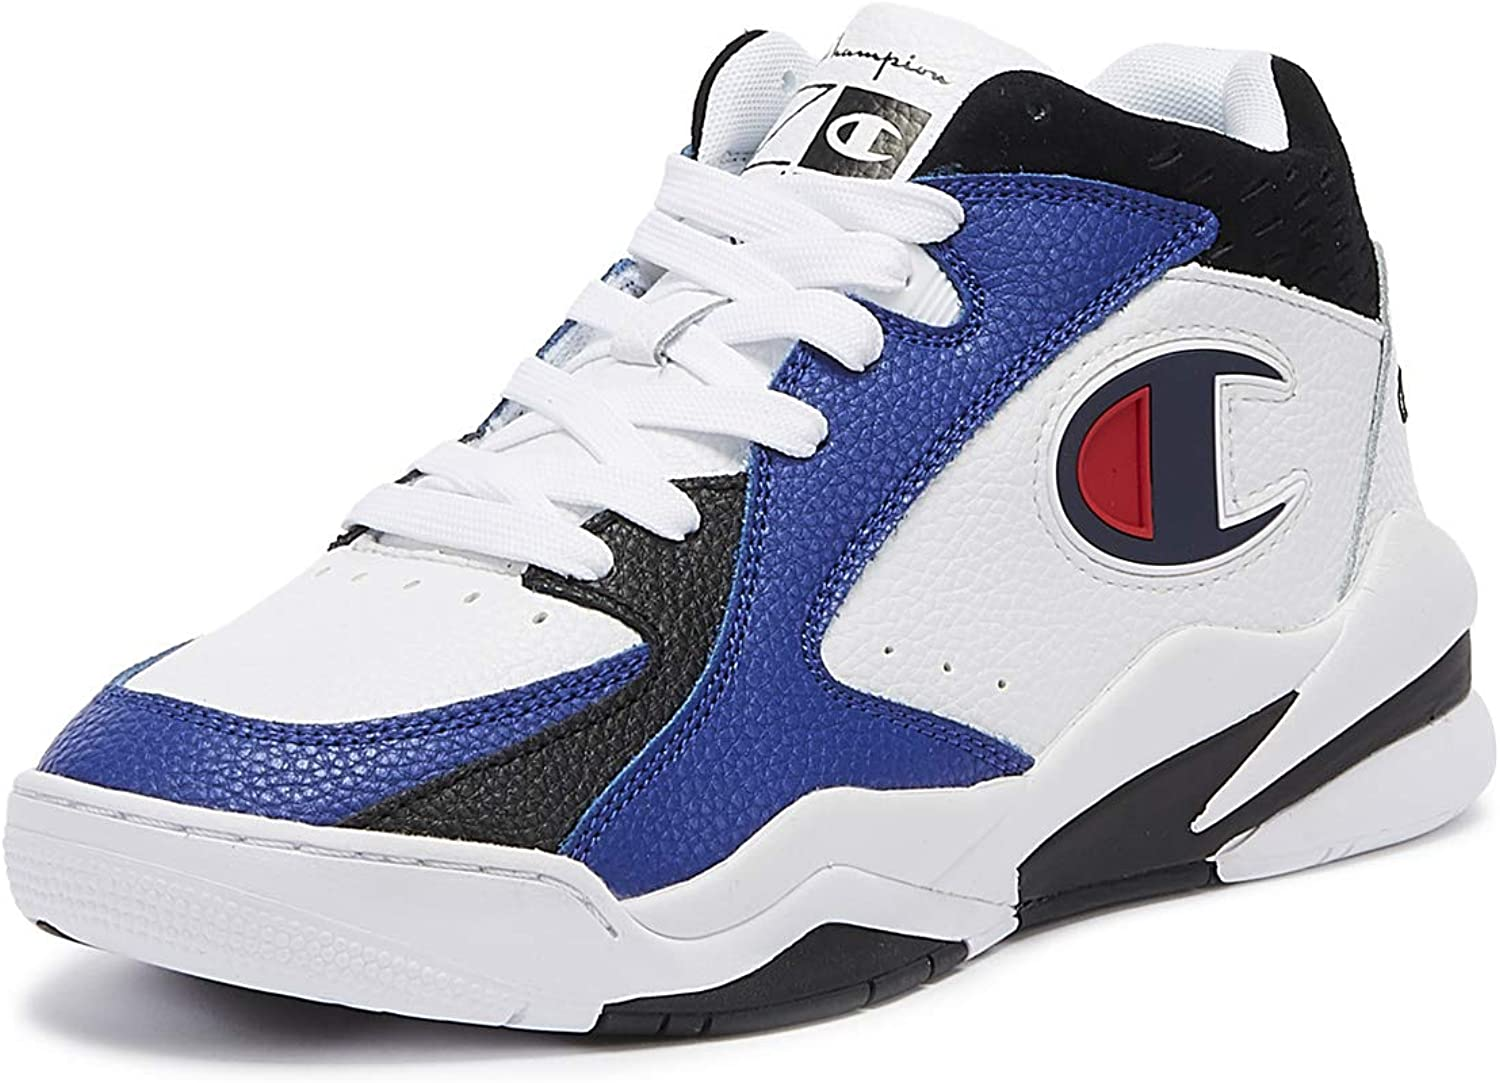 Champion Zone Mid Mens White Black Navy Sneakers